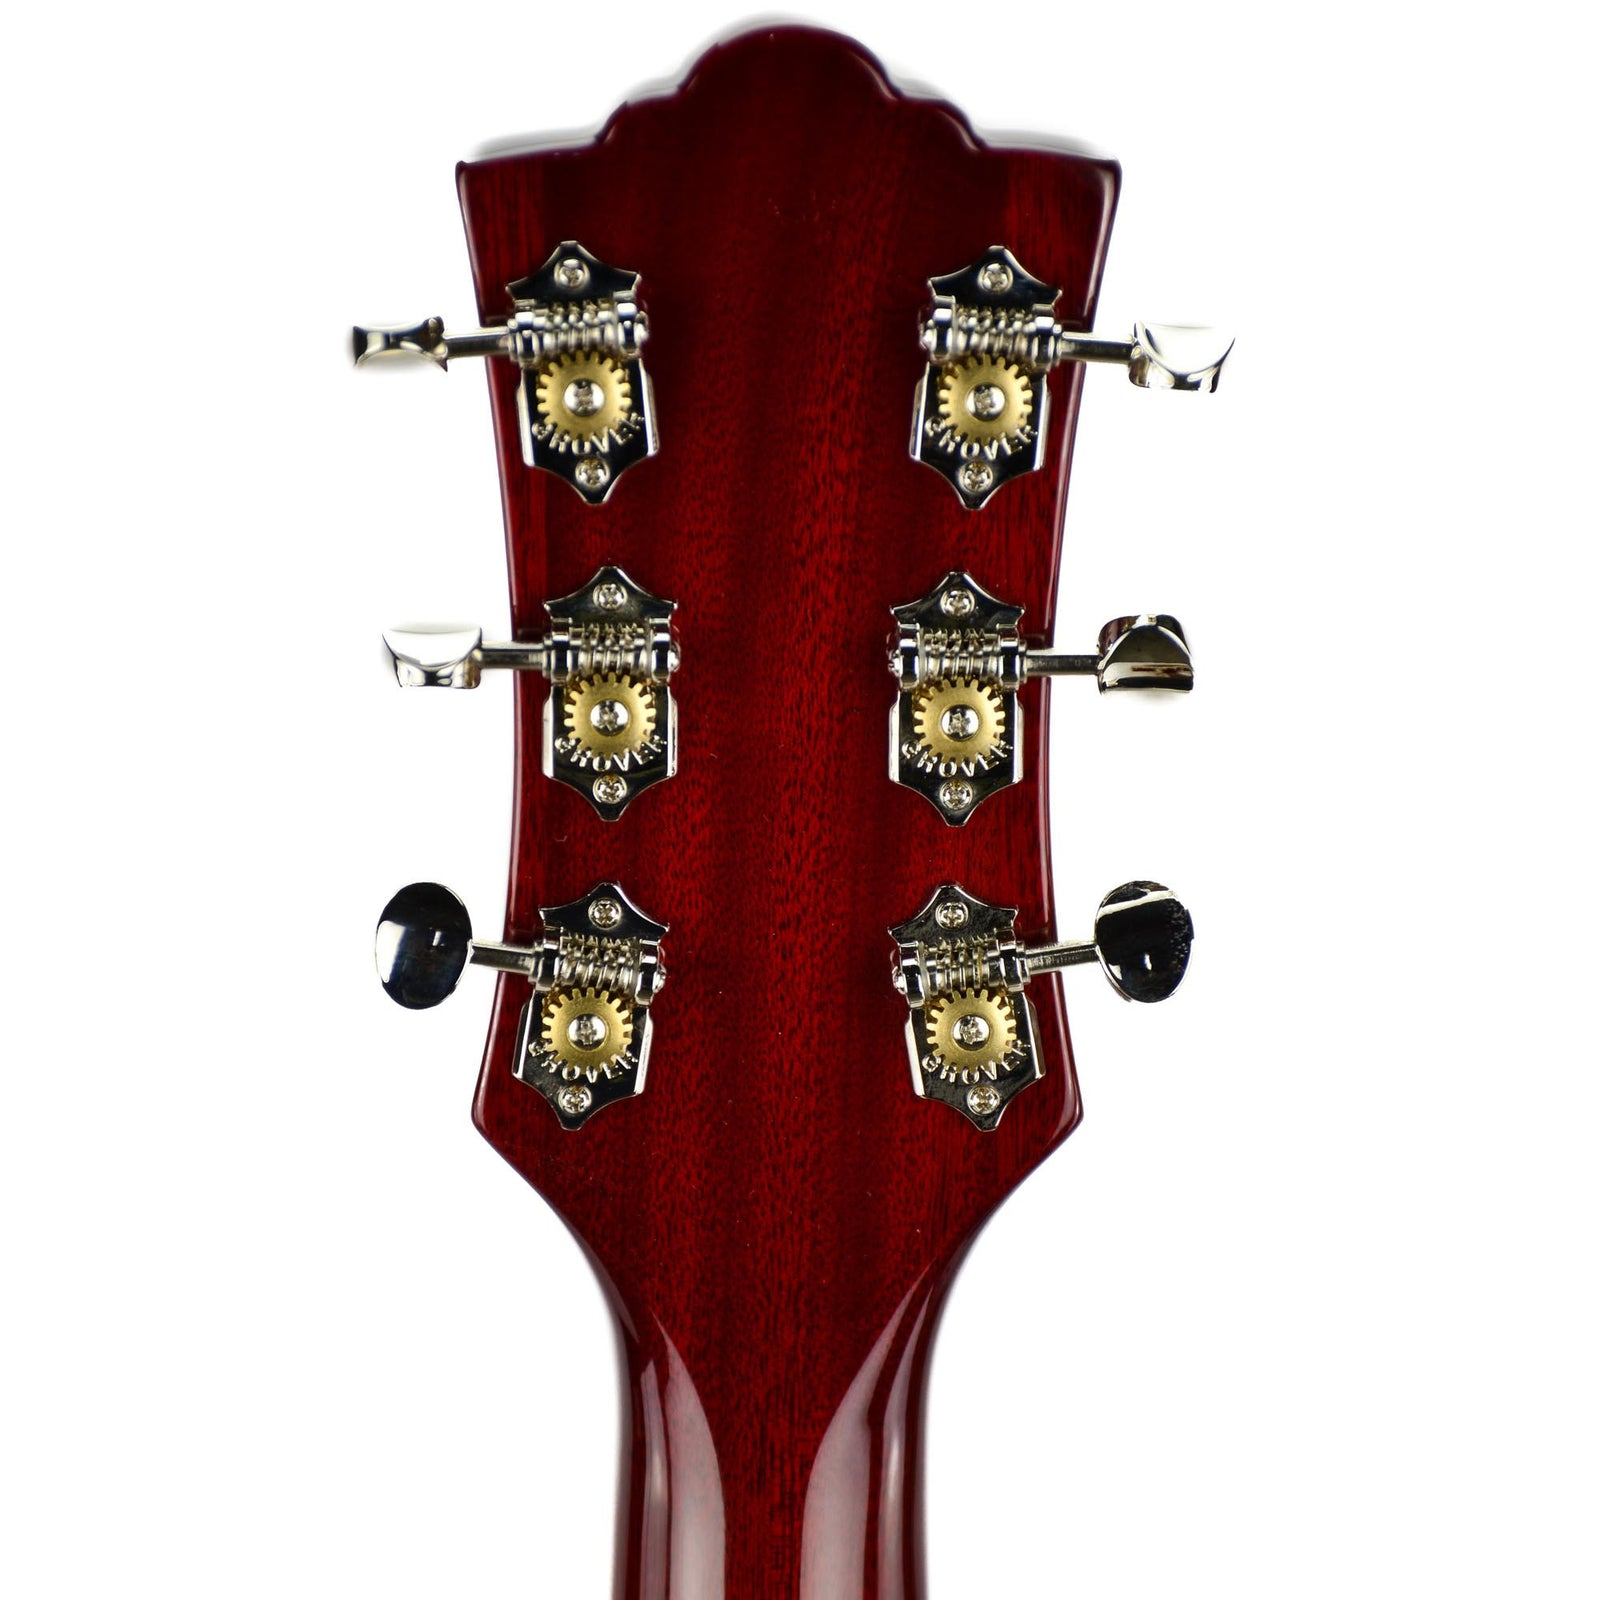 Guild Newark Street Starfire 3 With Bigsby - Cherry Red